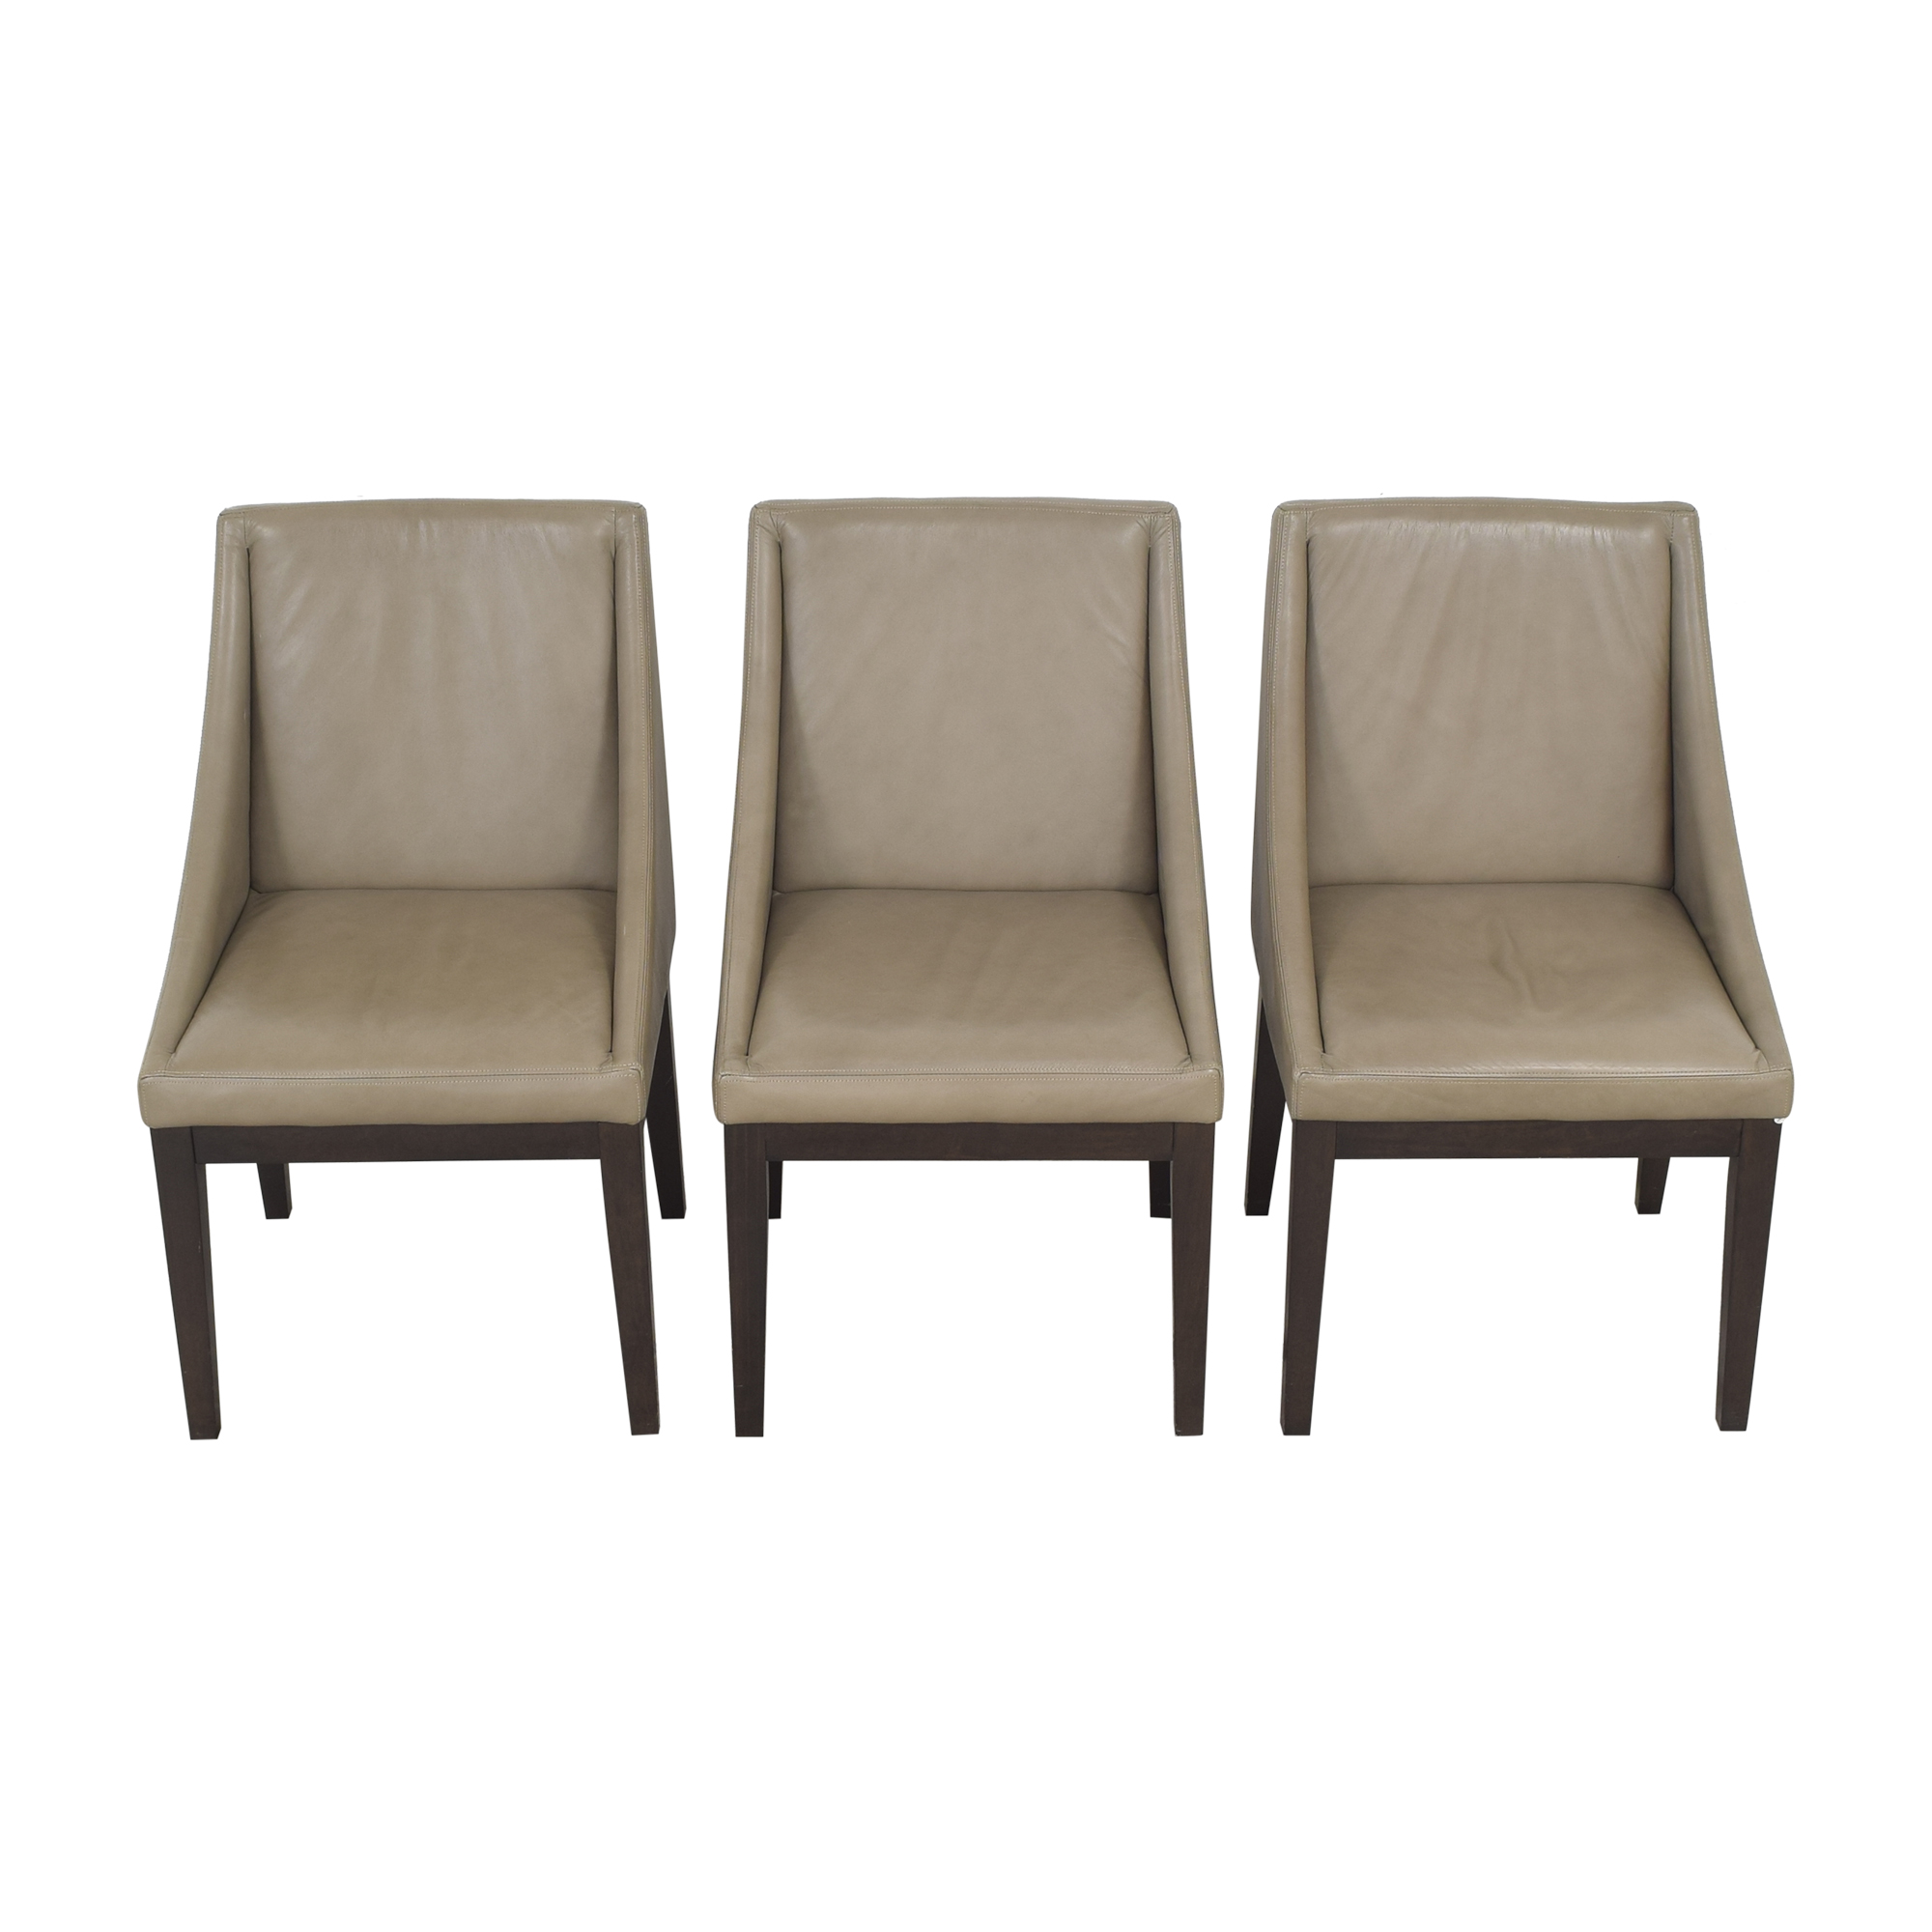 West Elm West Elm Curved Dining Chairs dimensions